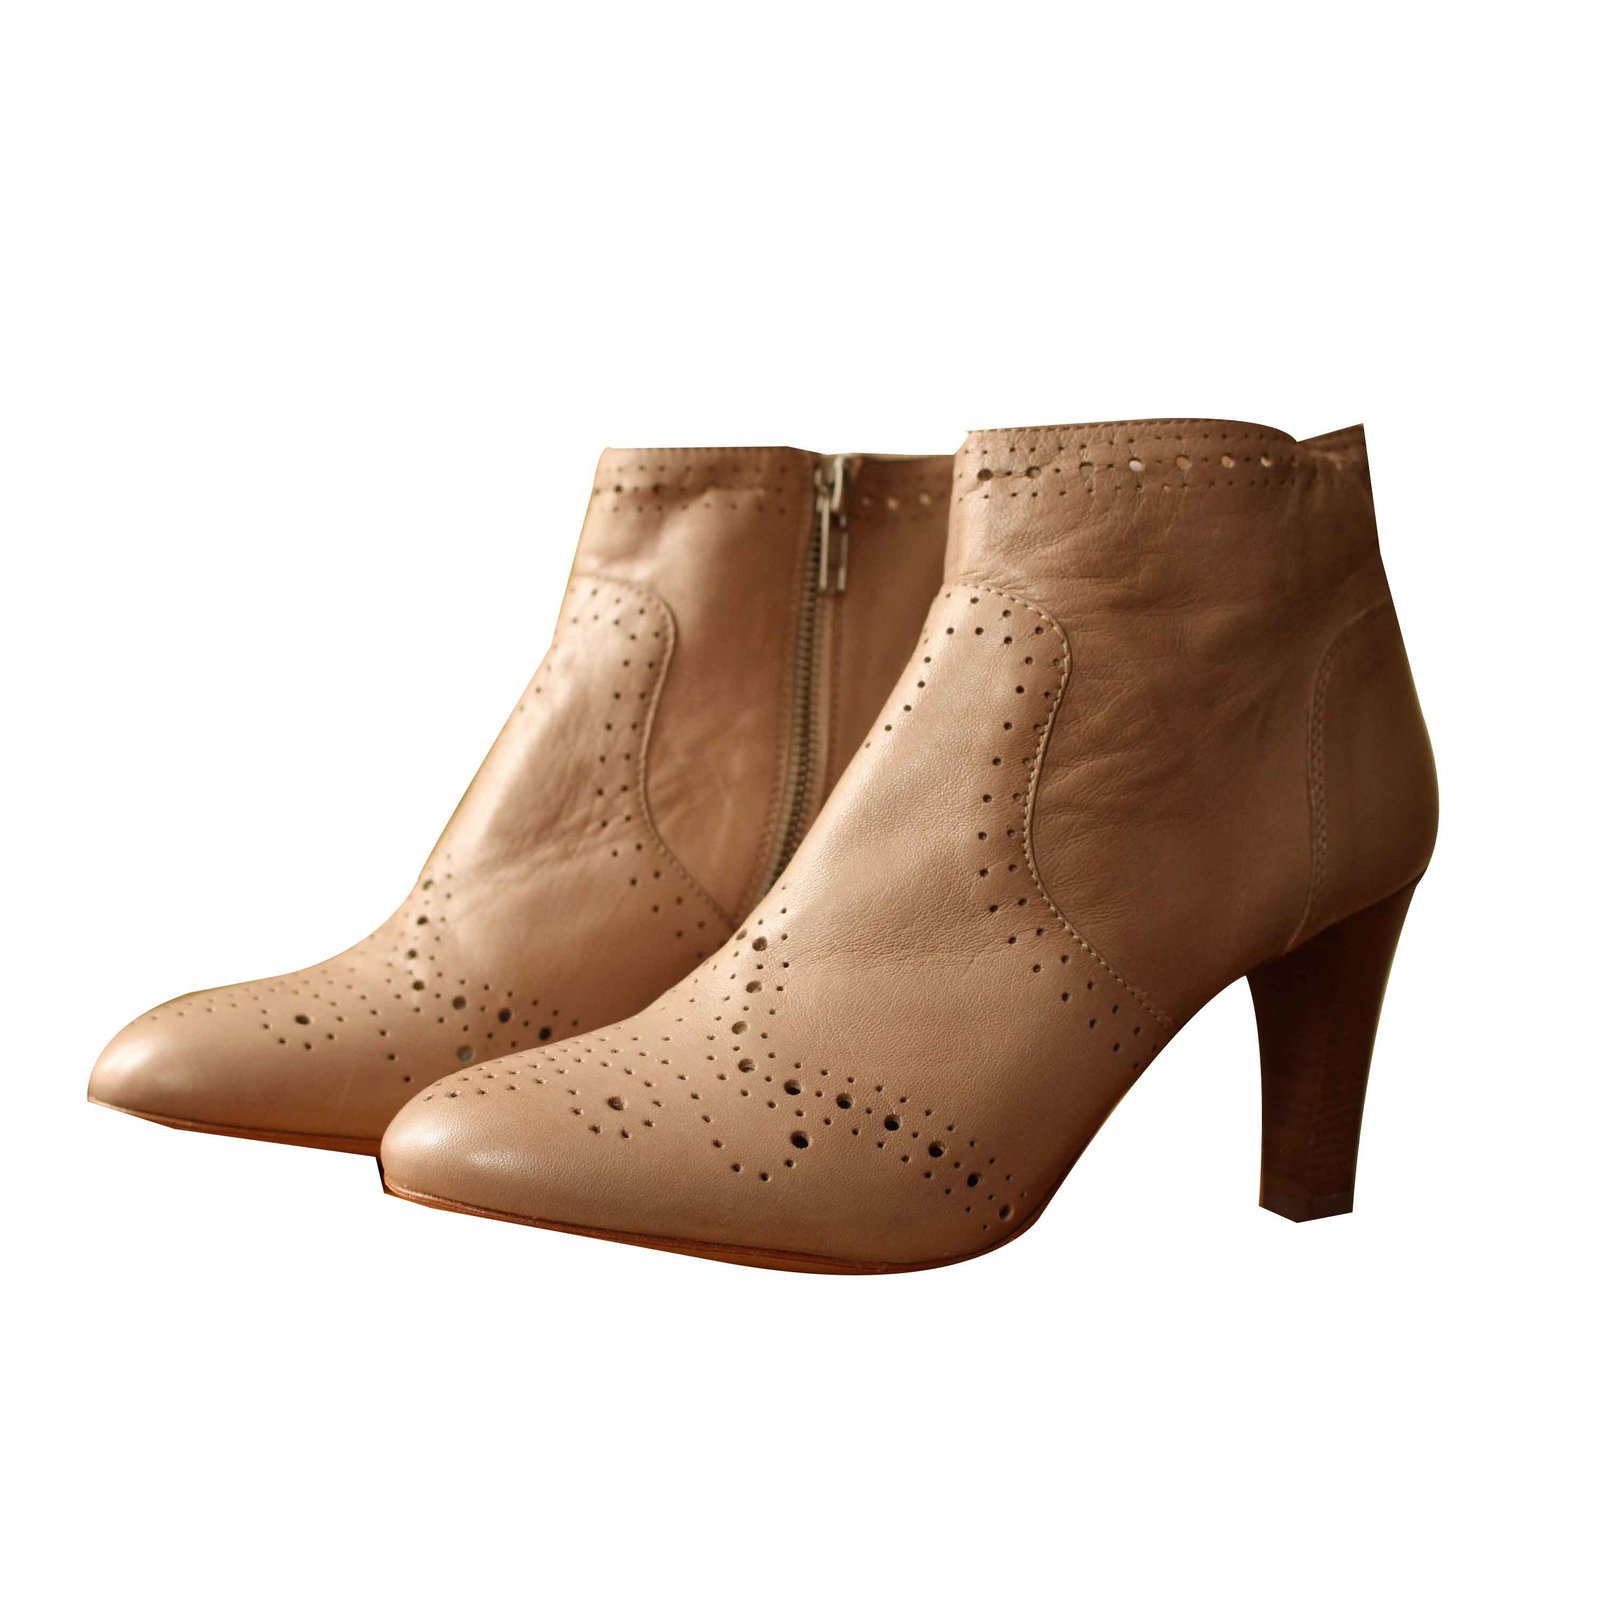 Autre Marque Flowered toe boots Ankle Boots Leather Beige ref.101583